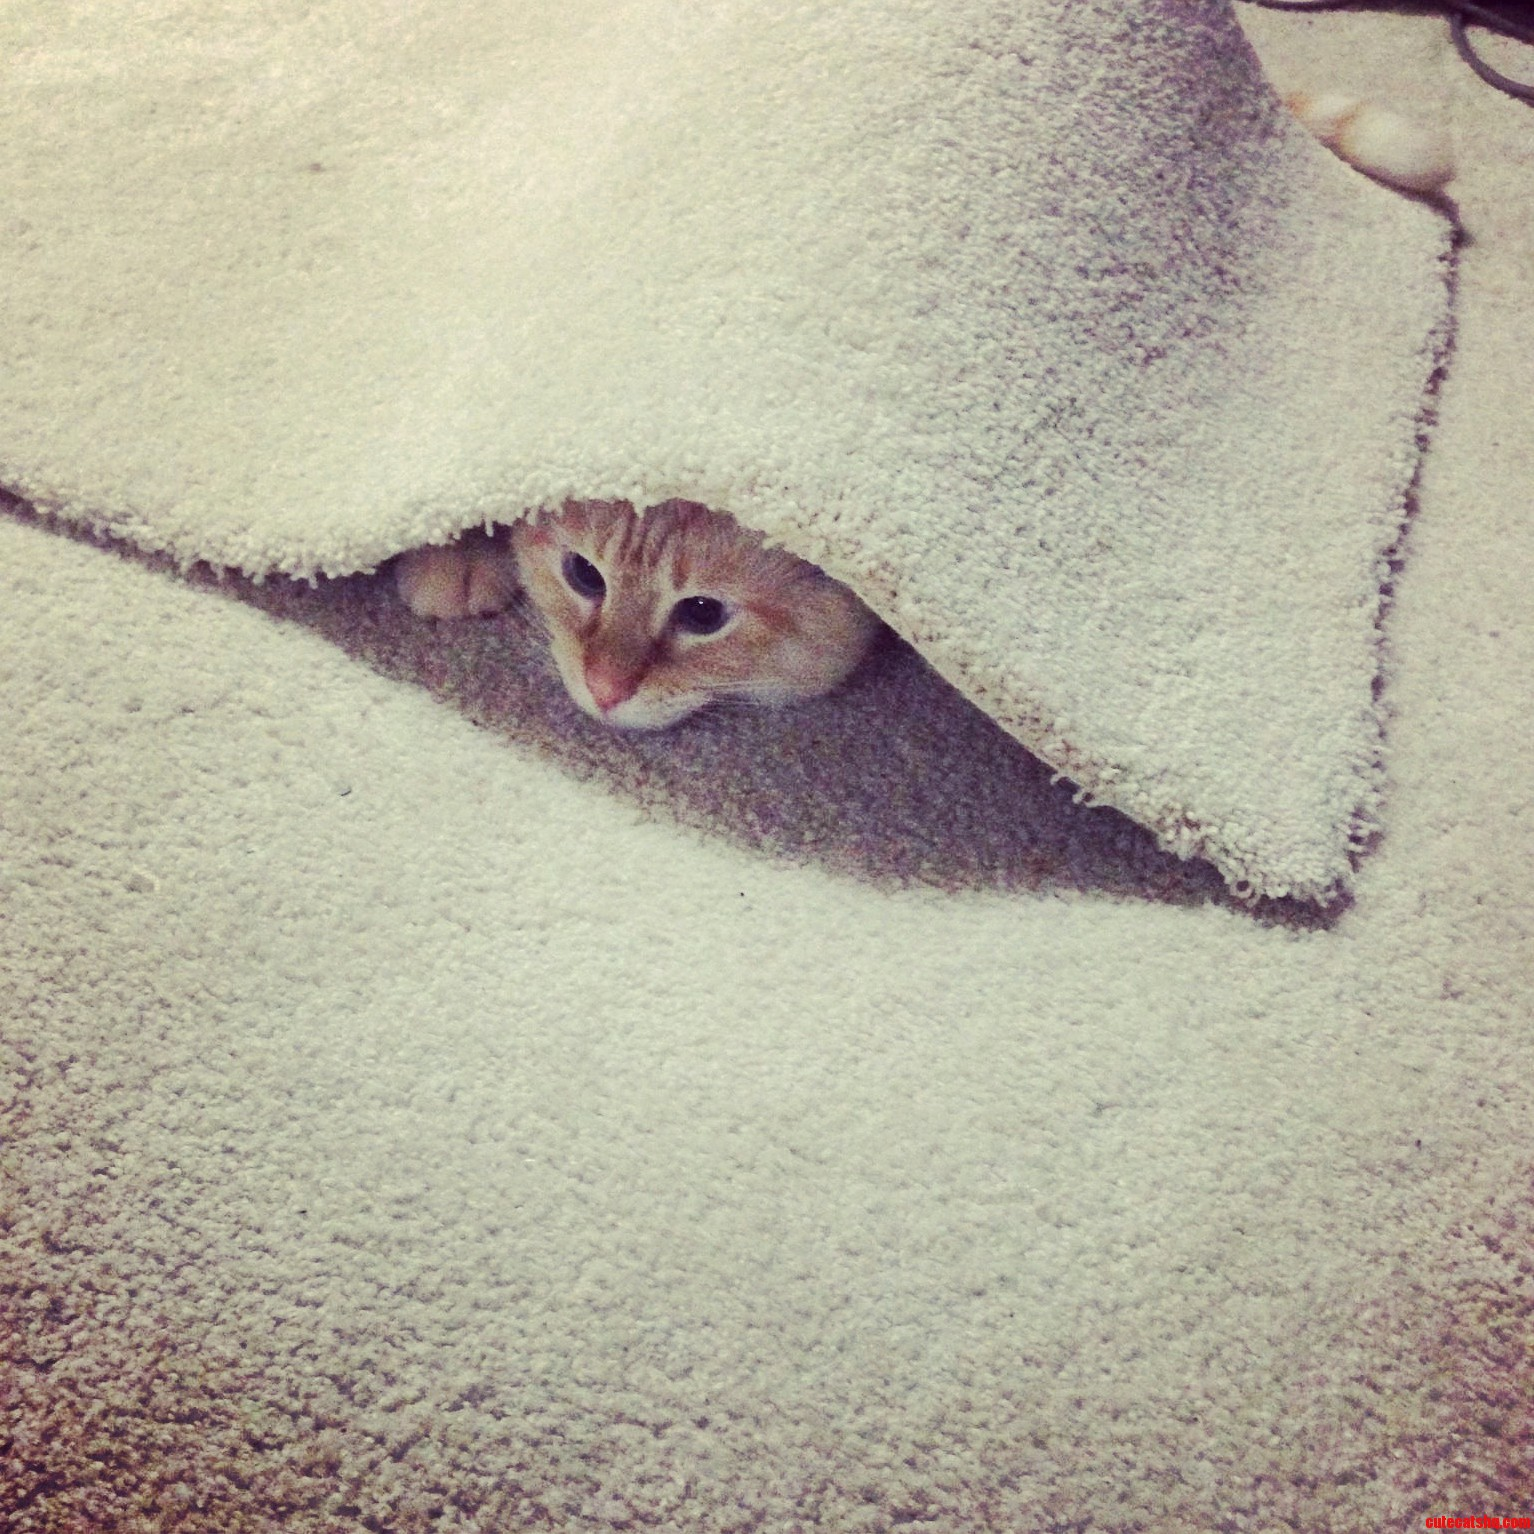 We think he was playing hide go seek alone…we think.